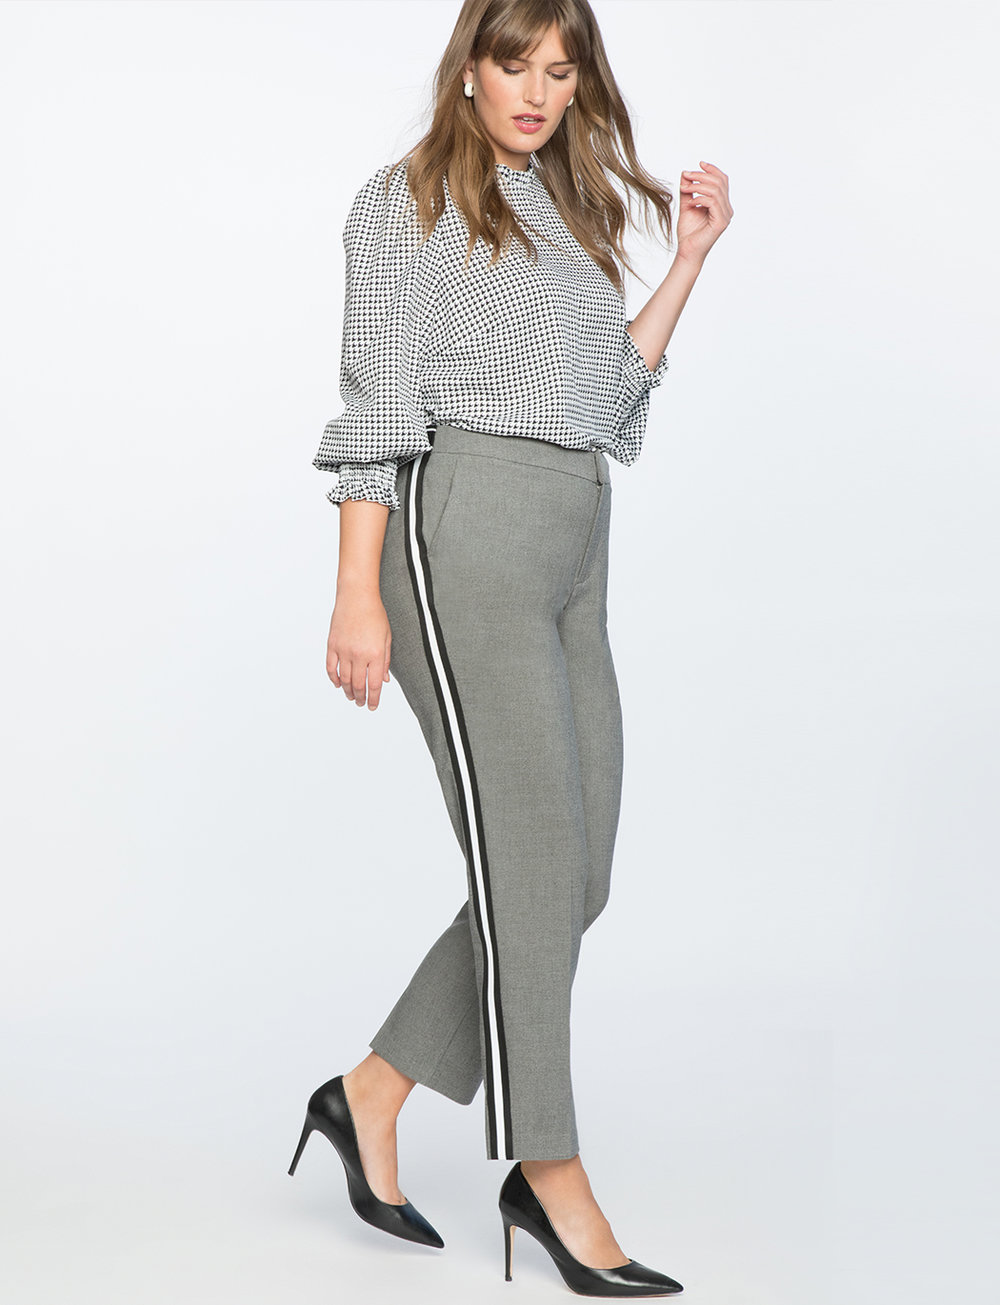 Slim Leg Trouser With Side Stripe. Eloquii. $89. + 50% off with code: YESPLEASE. (Wear as ankle pants).